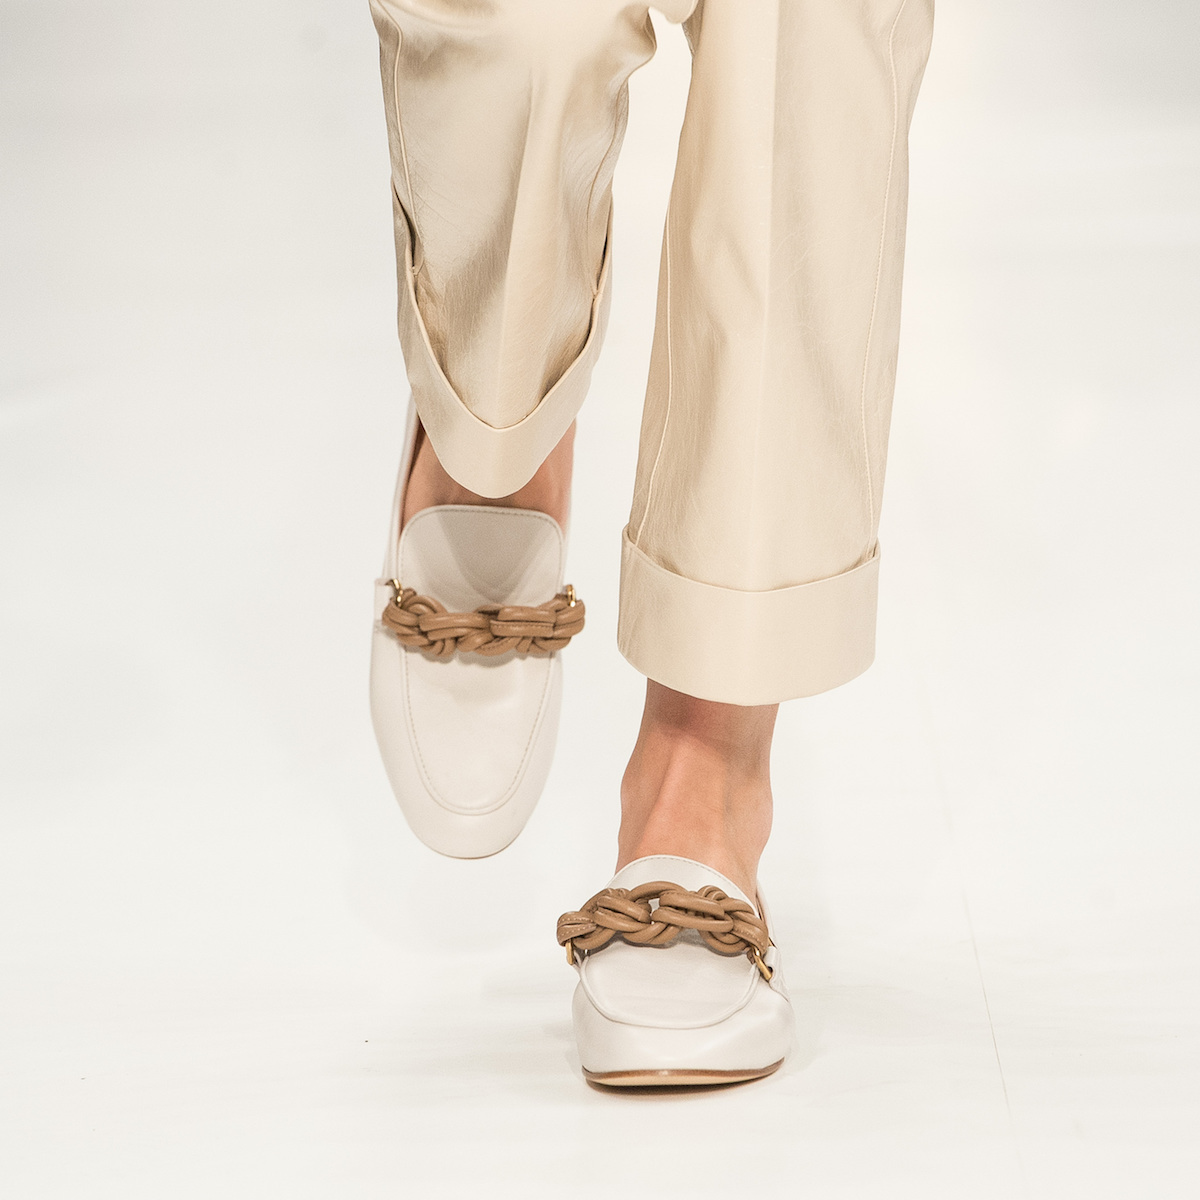 close-up-shoes-2.jpg